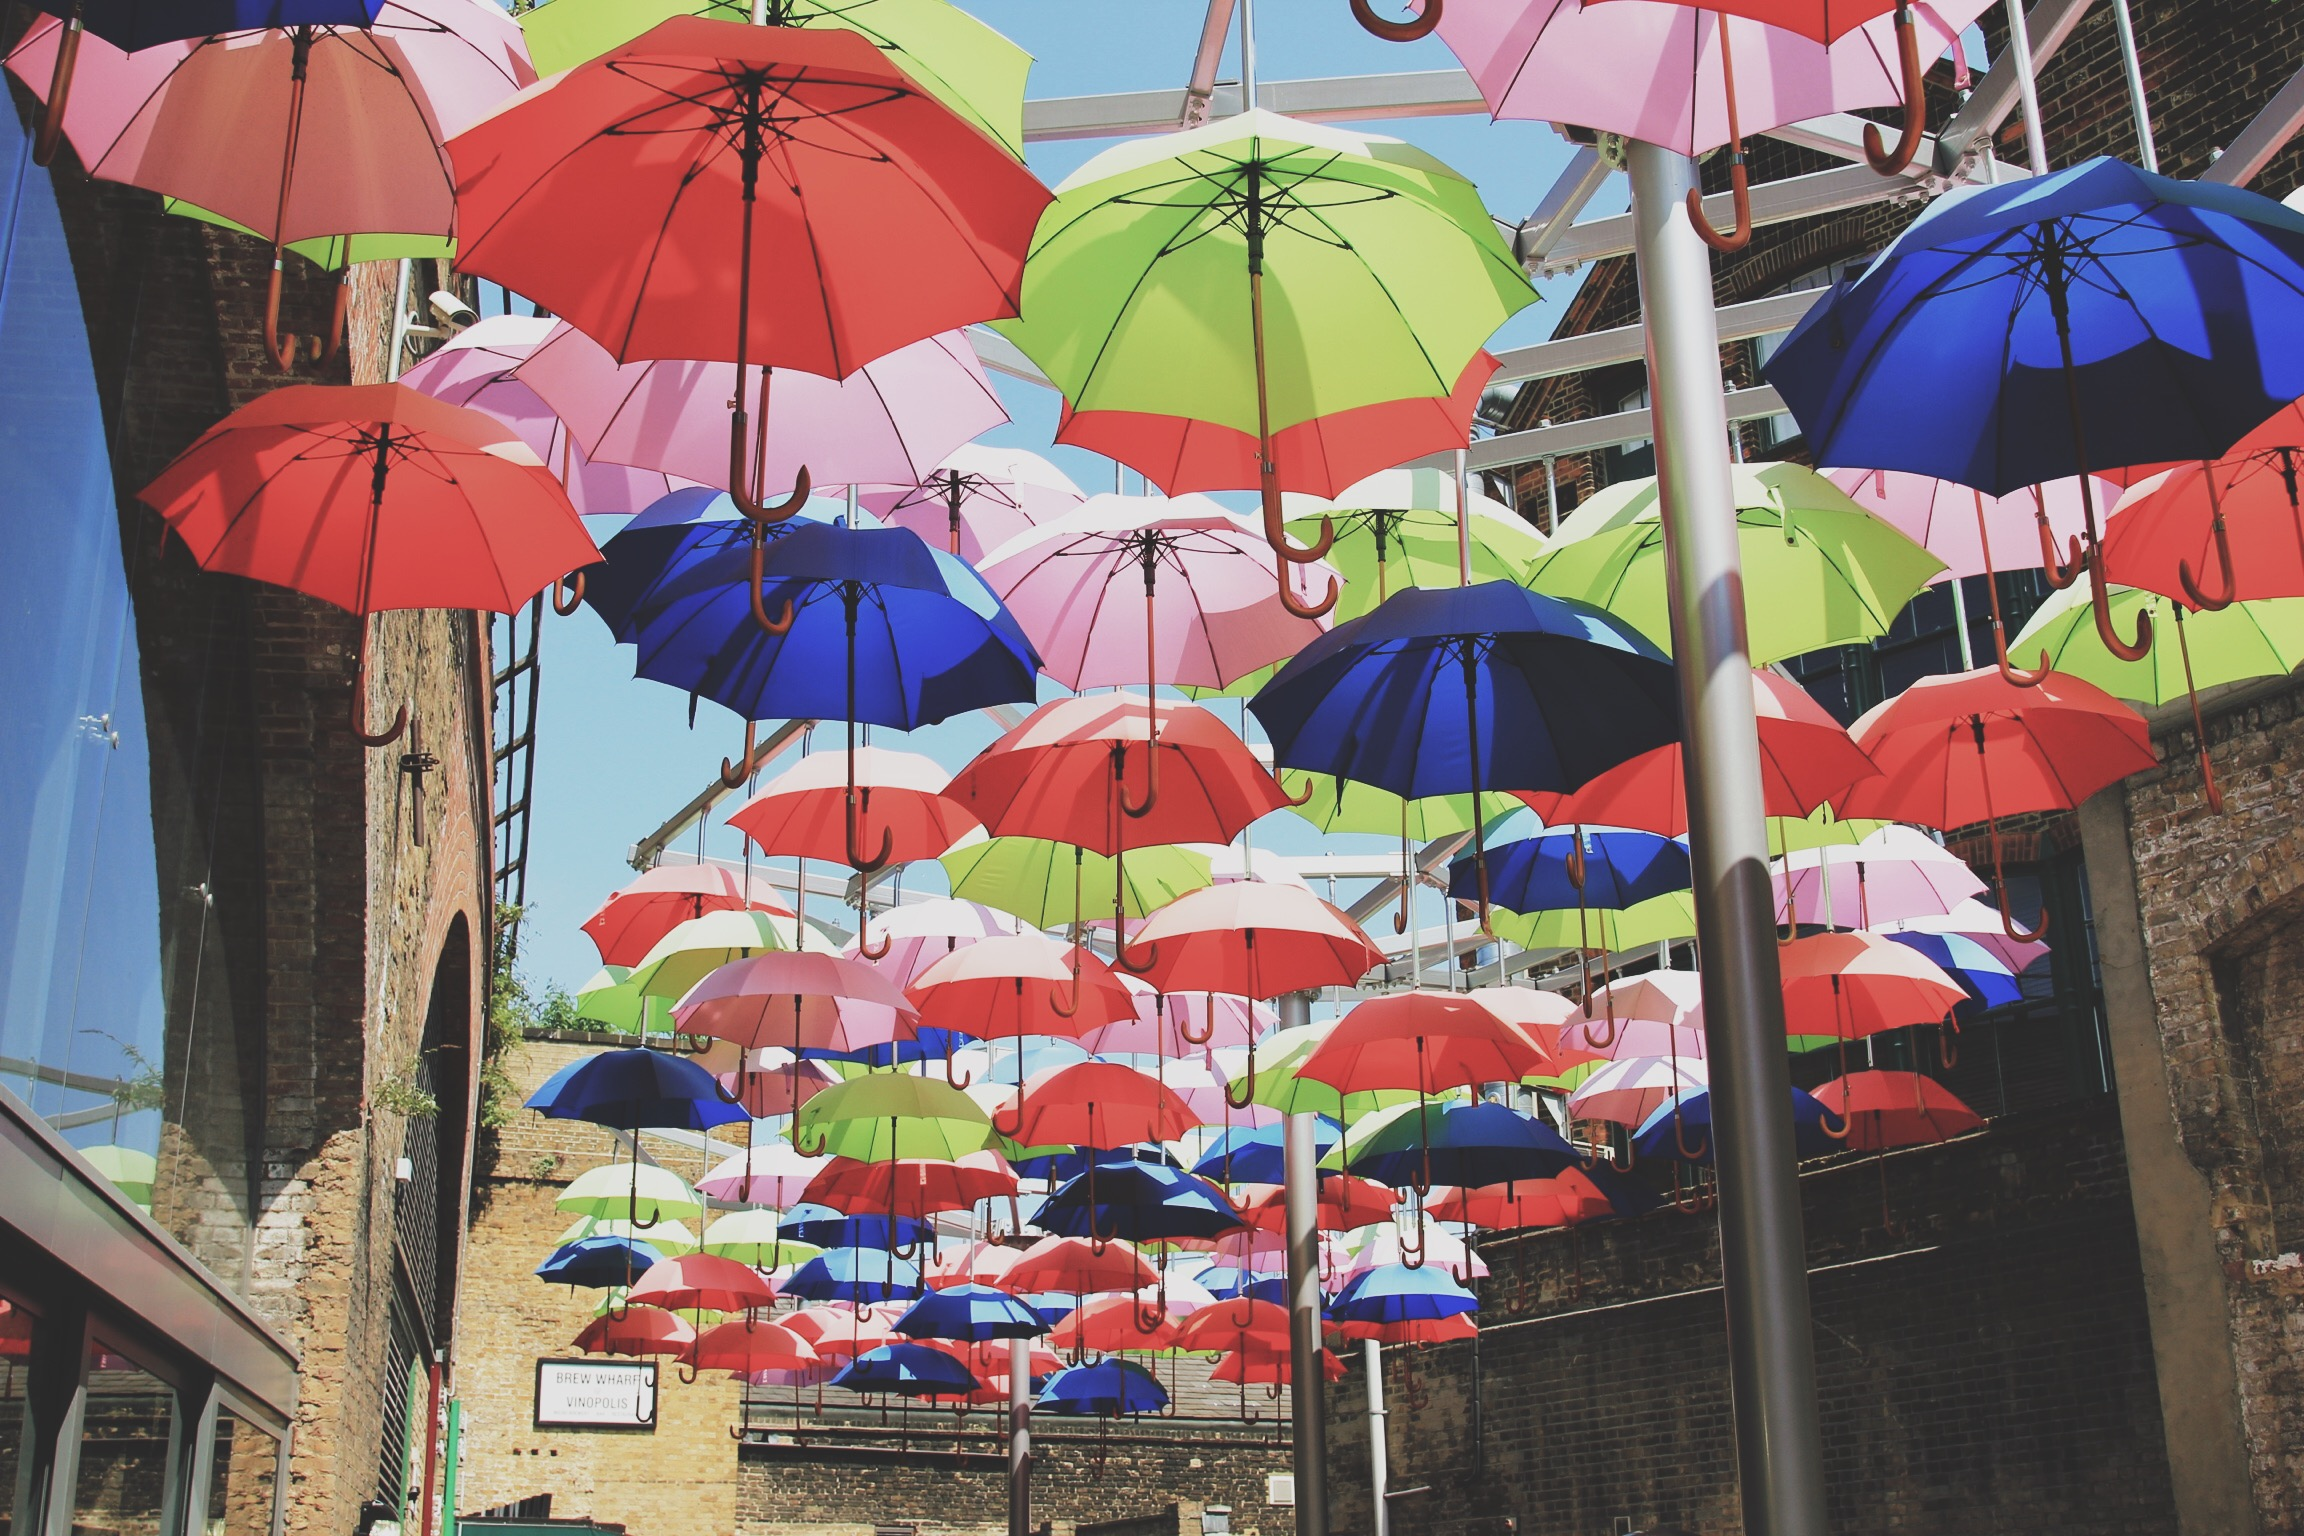 umbrellas-vinopolis-piazza-borough-market-blog.jpg